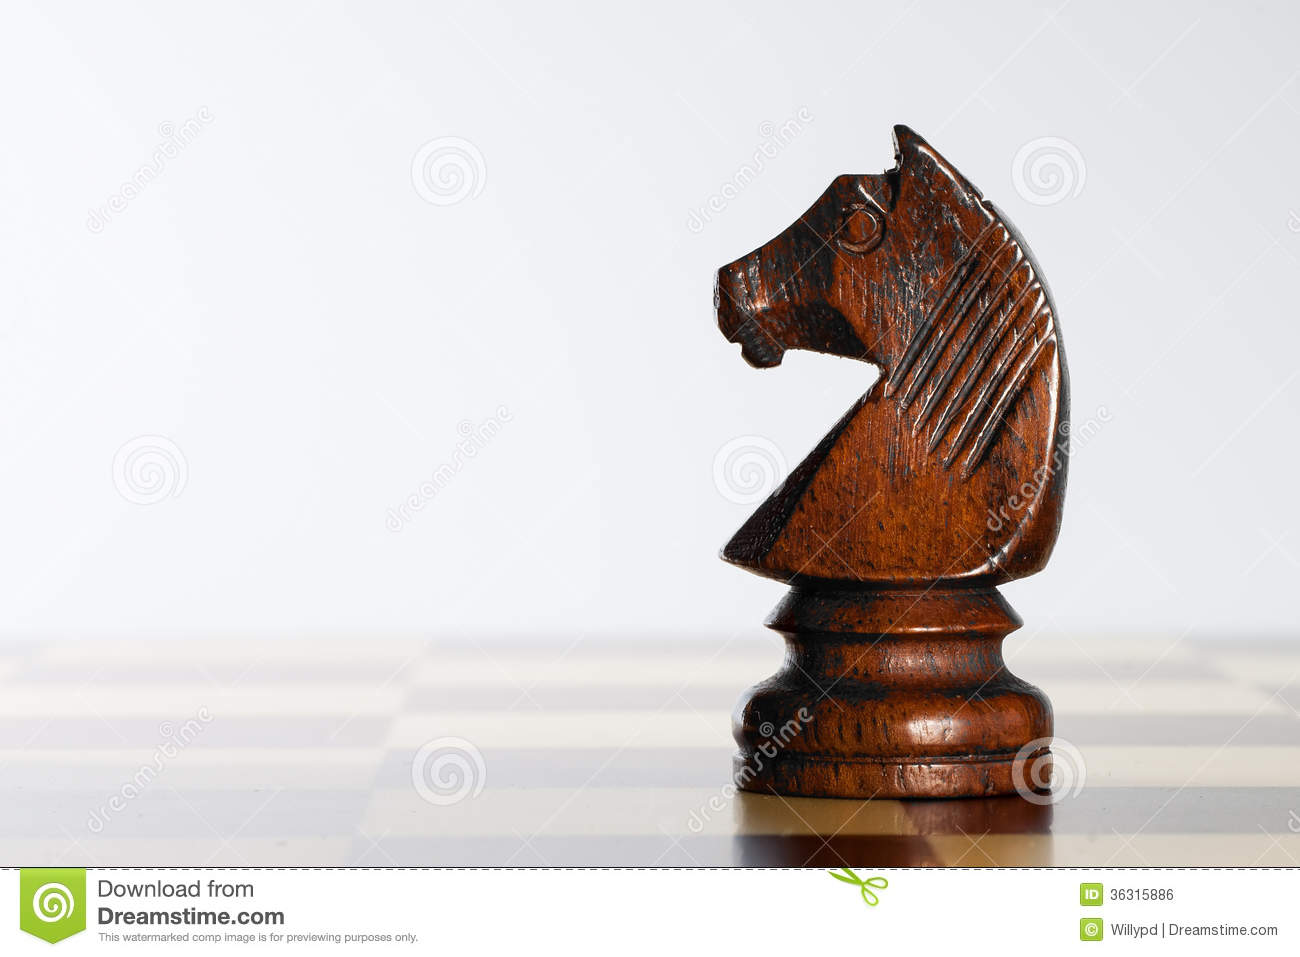 Knight Chess Royalty Free Stock Image - Image: 36315886